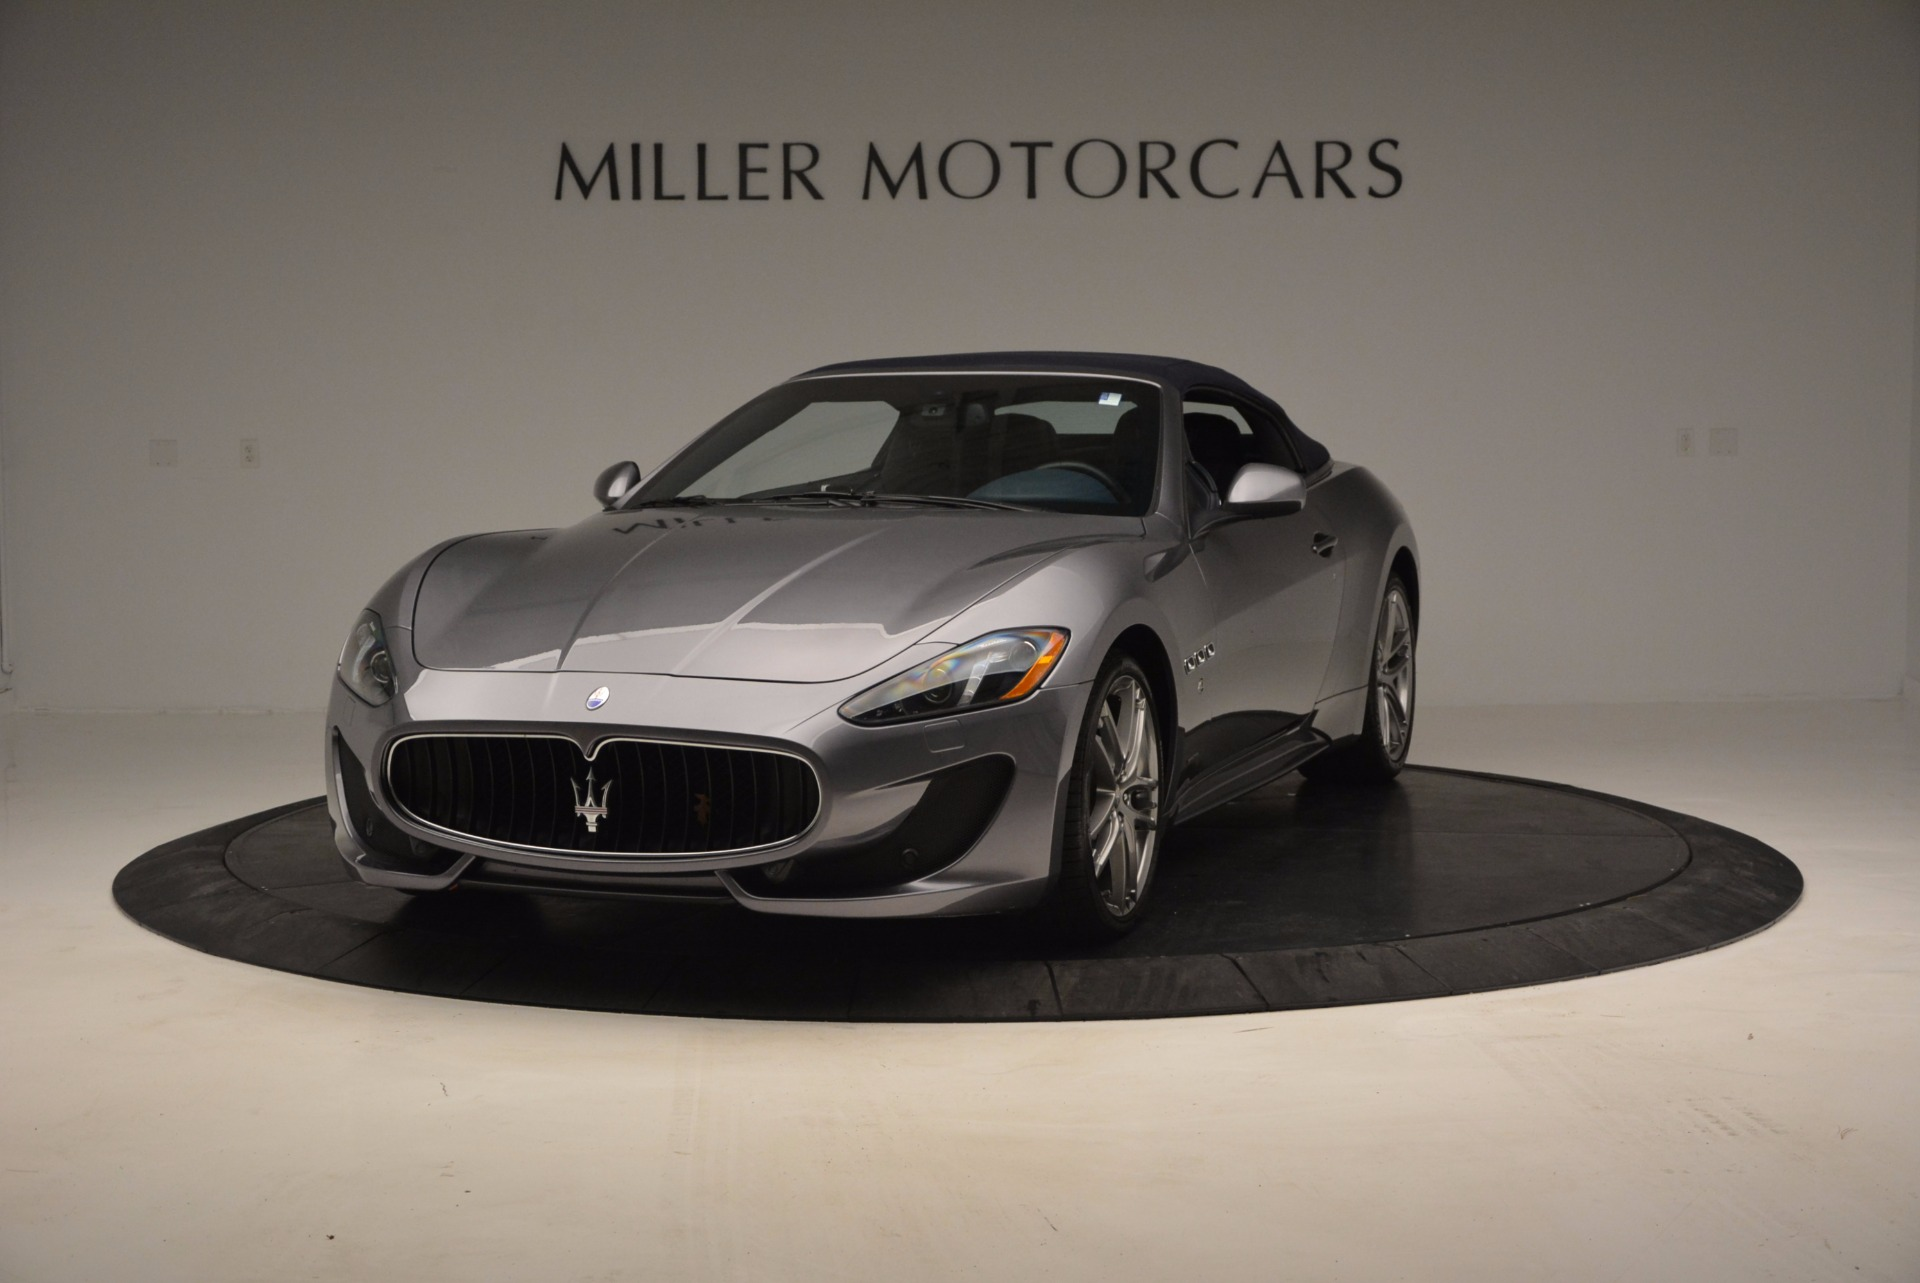 New 2017 Maserati GranTurismo Sport For Sale In Westport, CT 598_p11